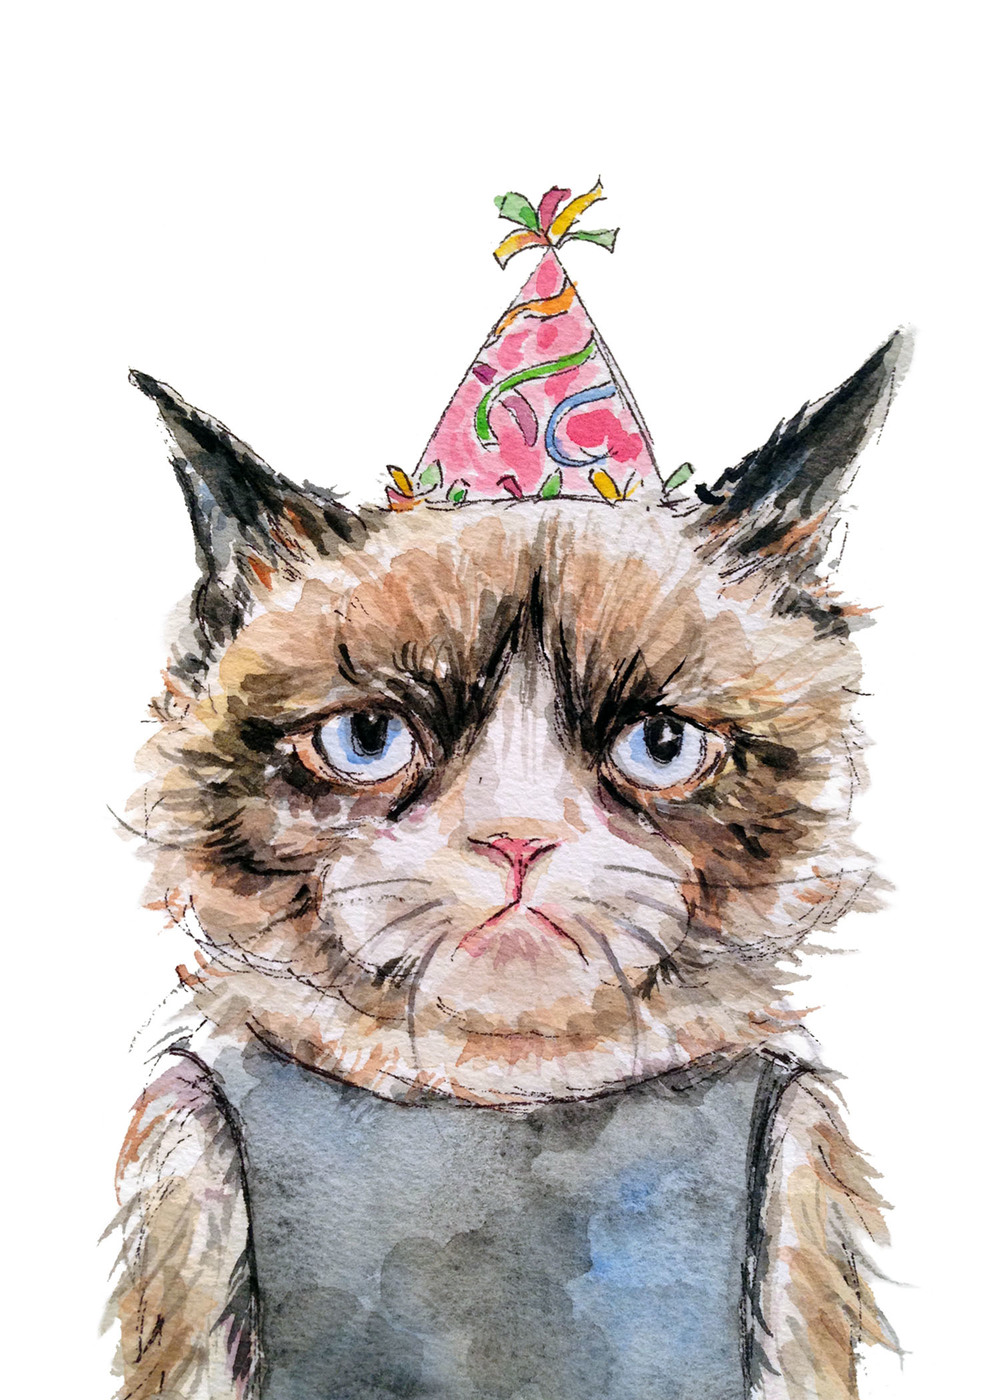 Grumpy Birthday Cat (ORIGINAL SOLD)